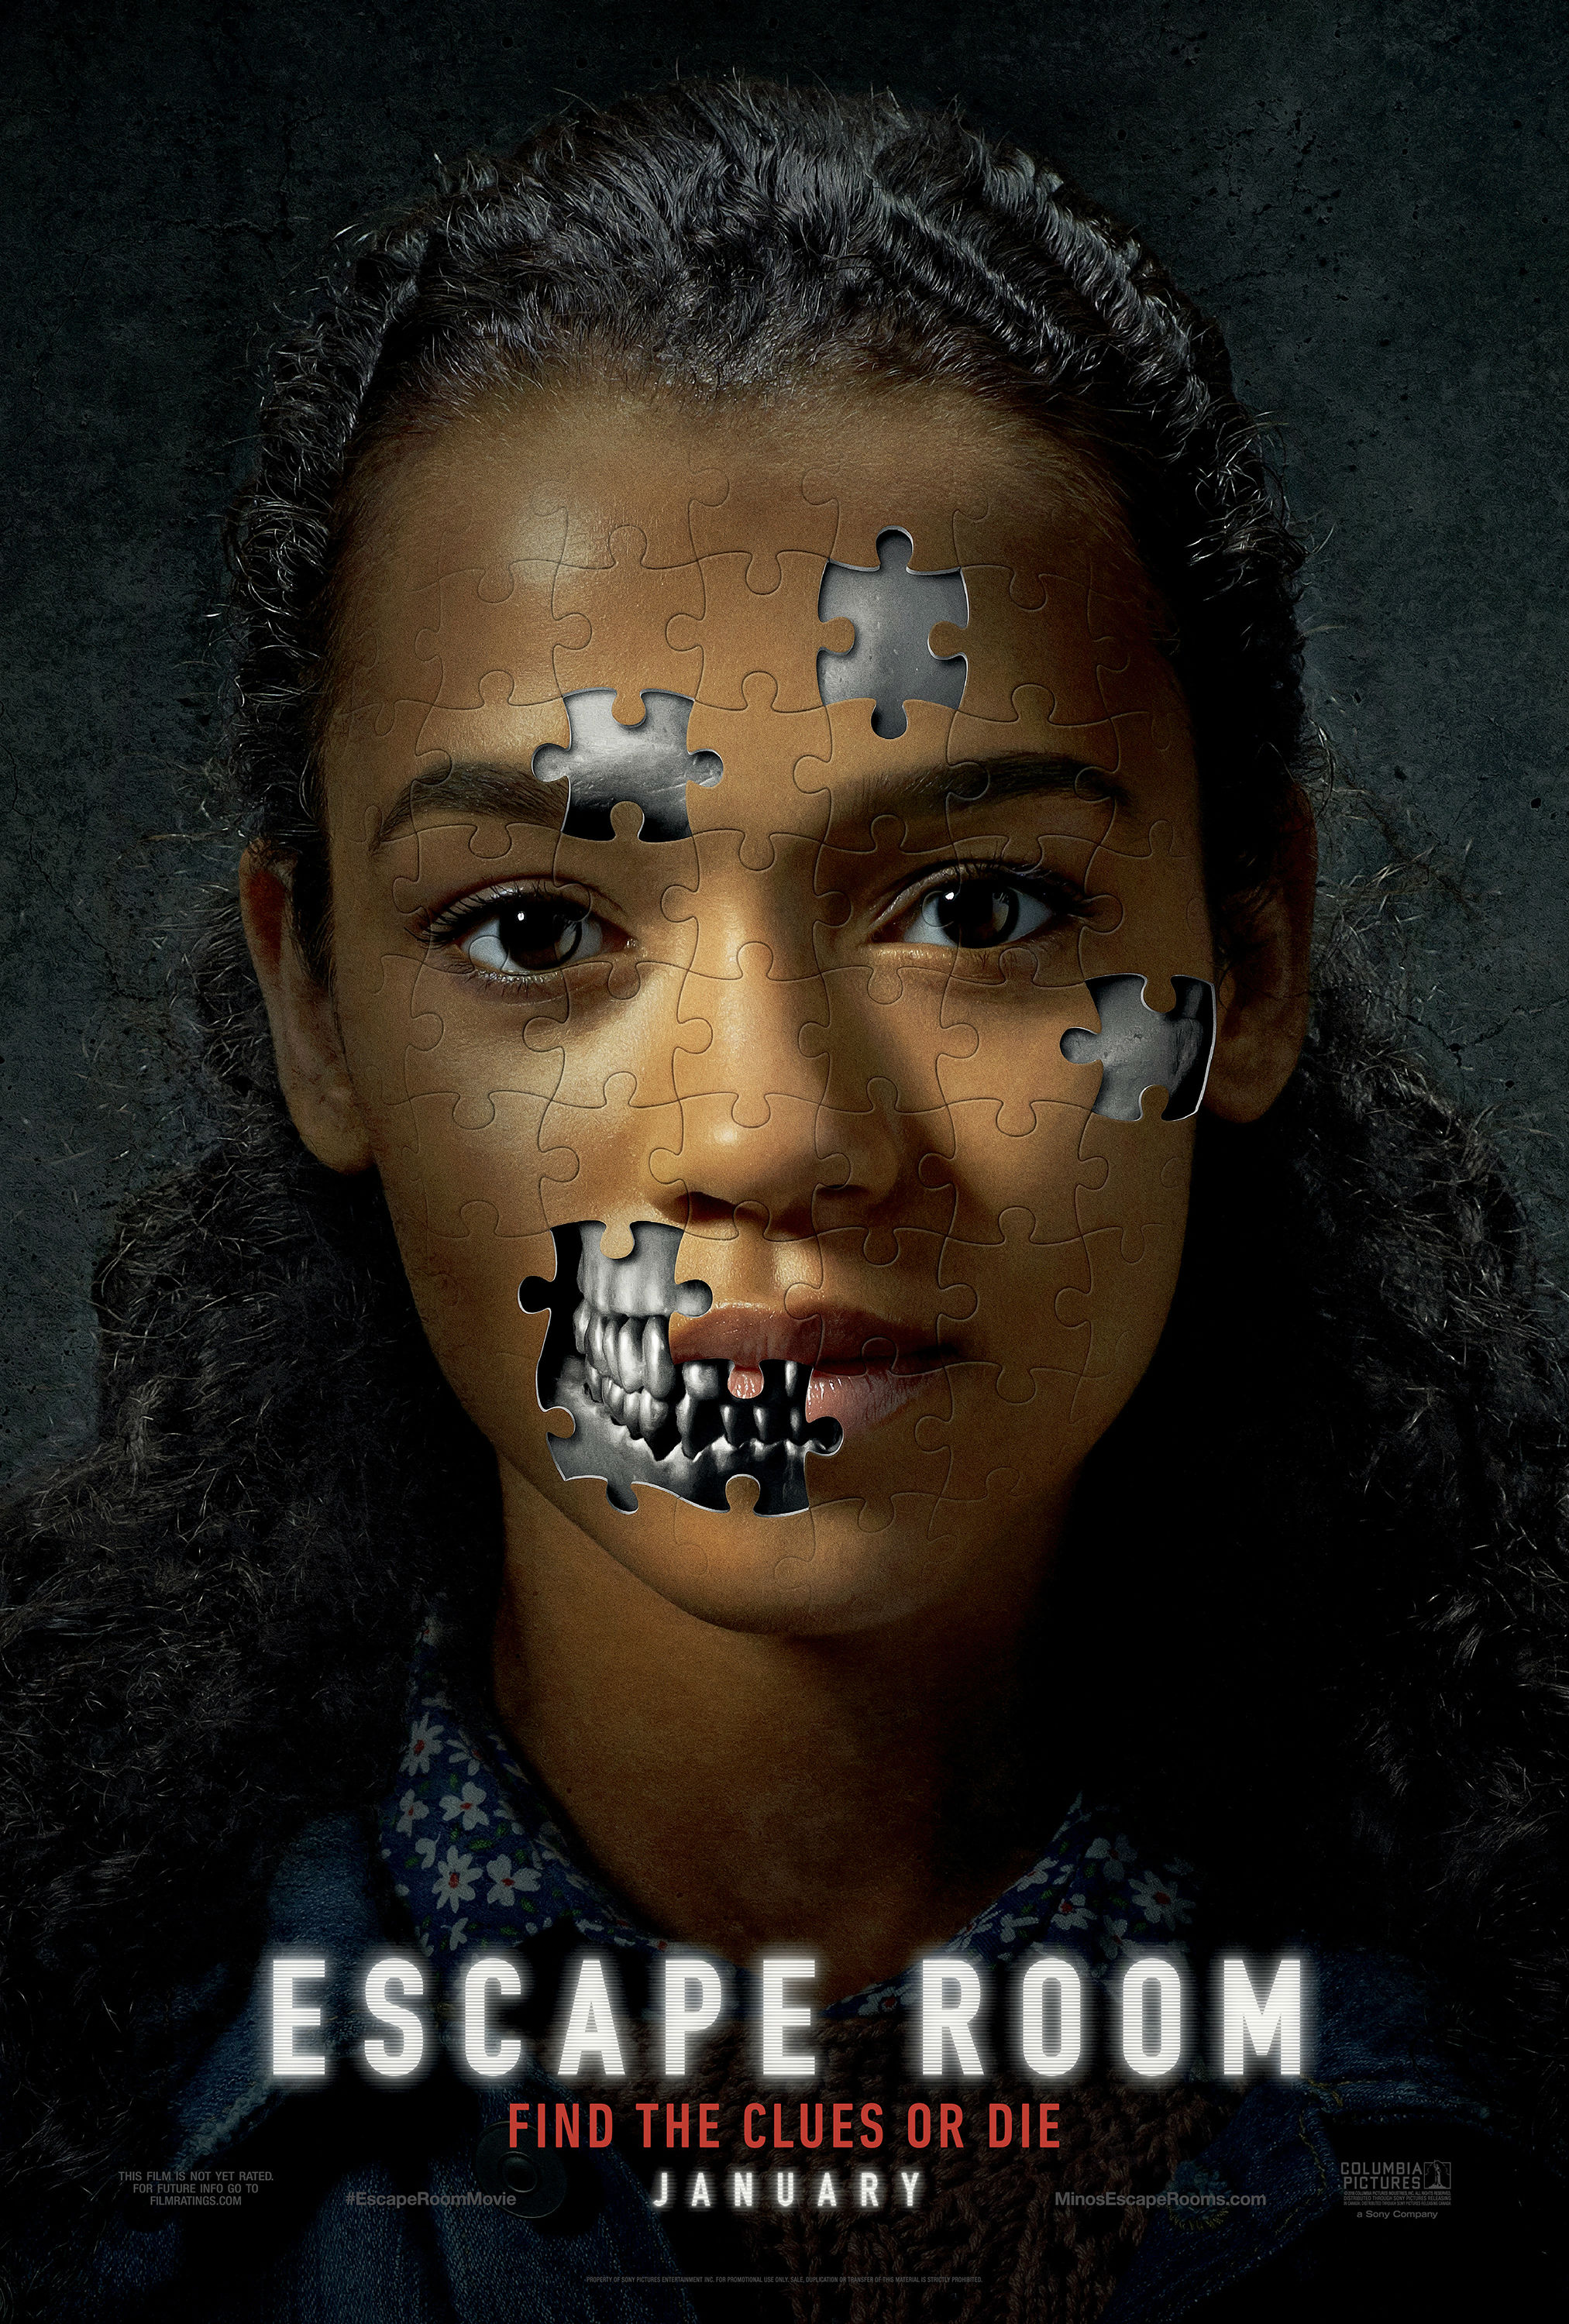 Trailer & Poster To Escape Room Starring Taylor Russell, Jay Ellis